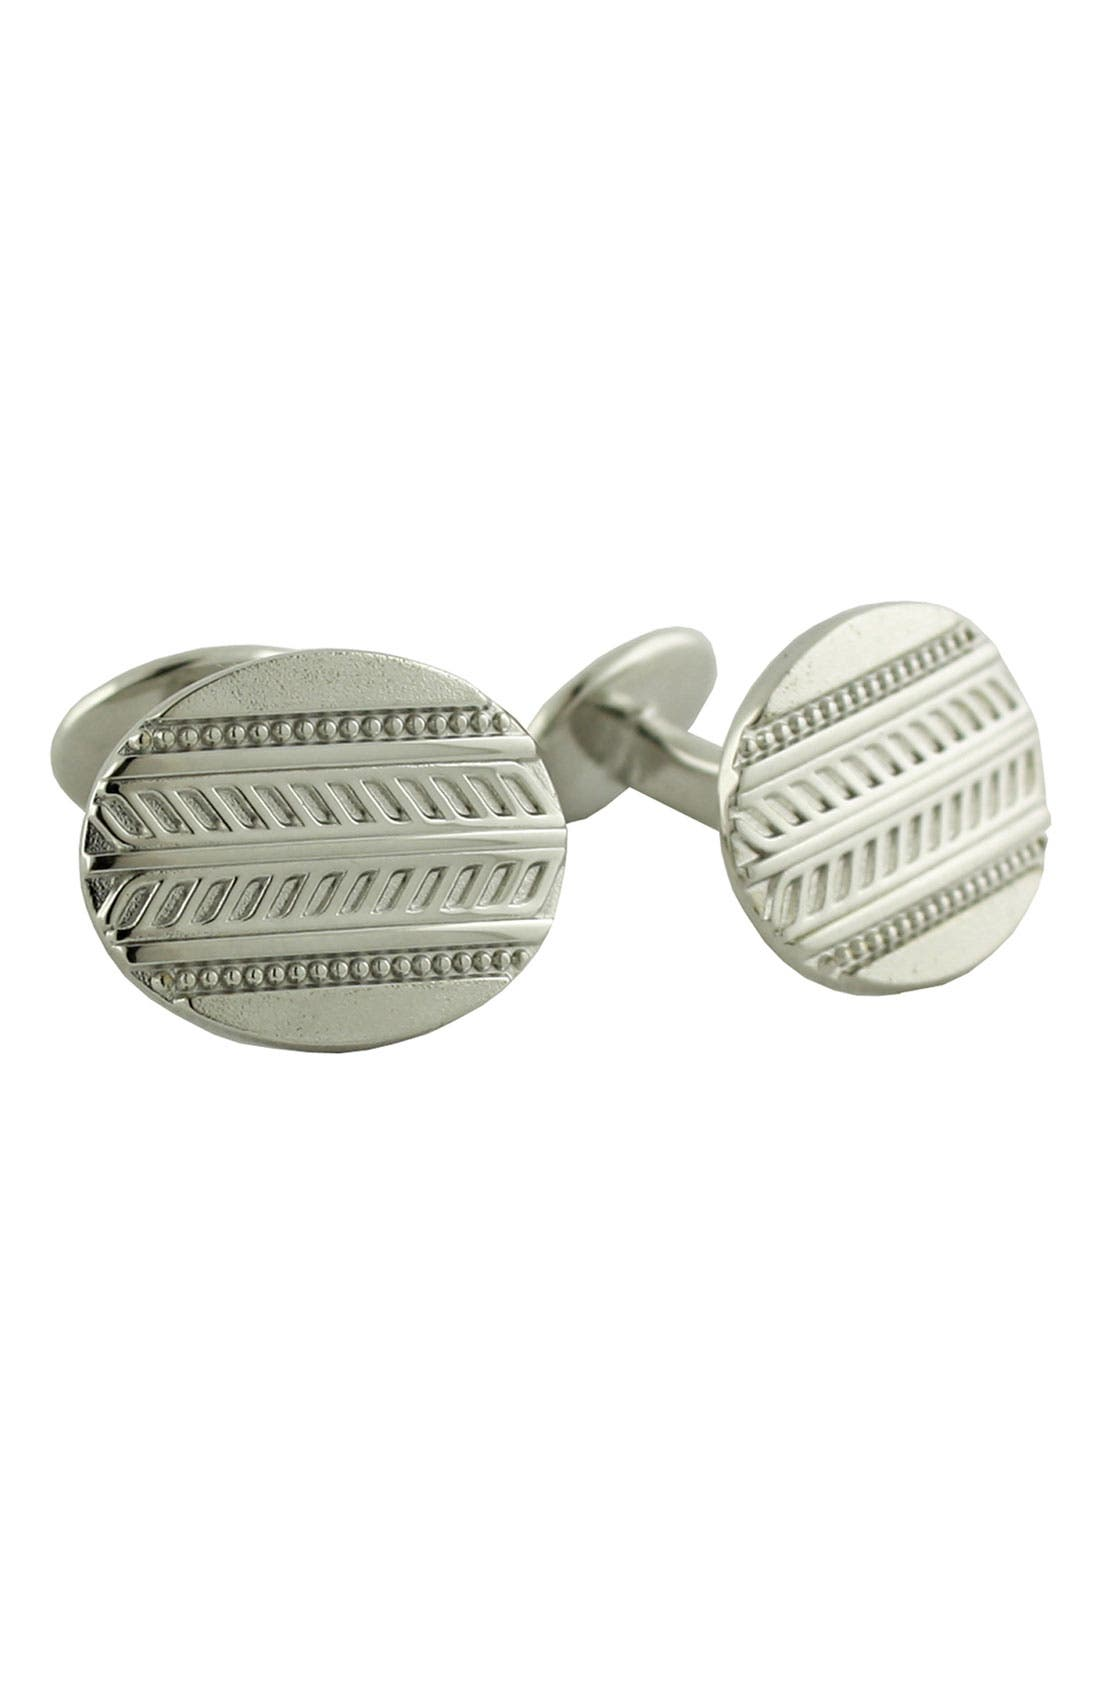 Main Image - David Donahue Oval Sterling Silver Cuff Links